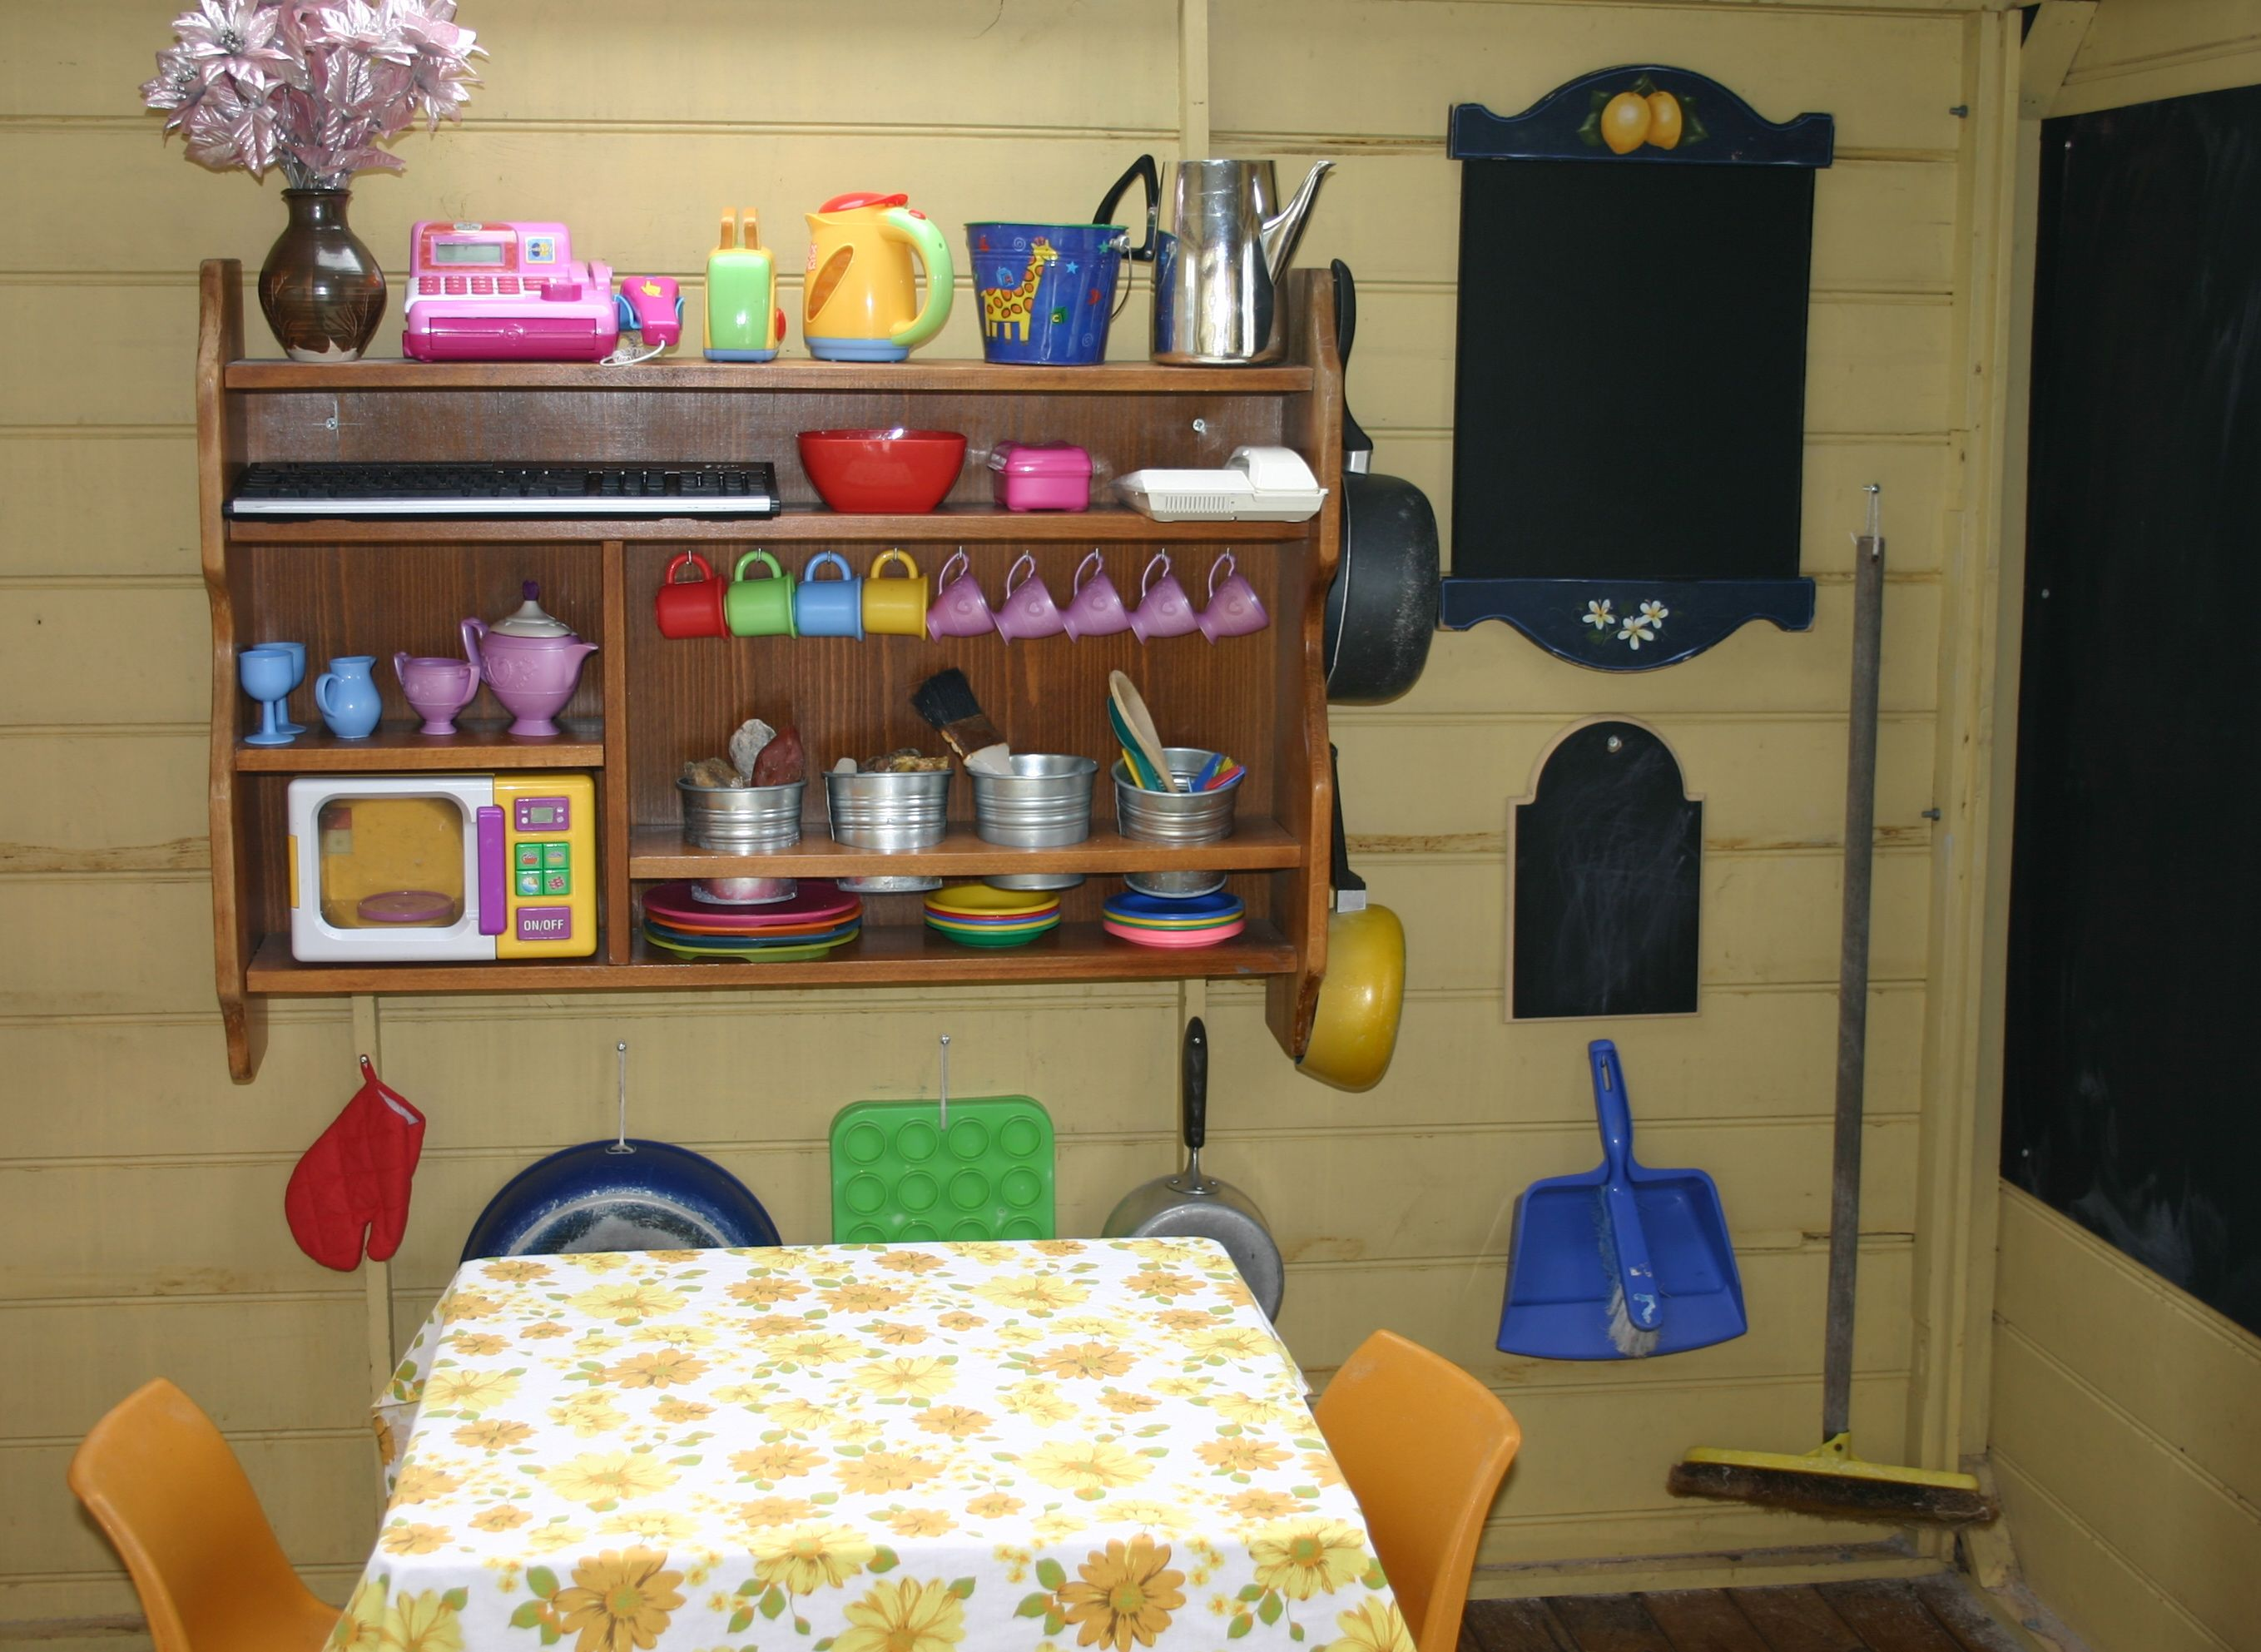 Small Bookcase Kitchenette Or Shelves Set Them At Childs Height